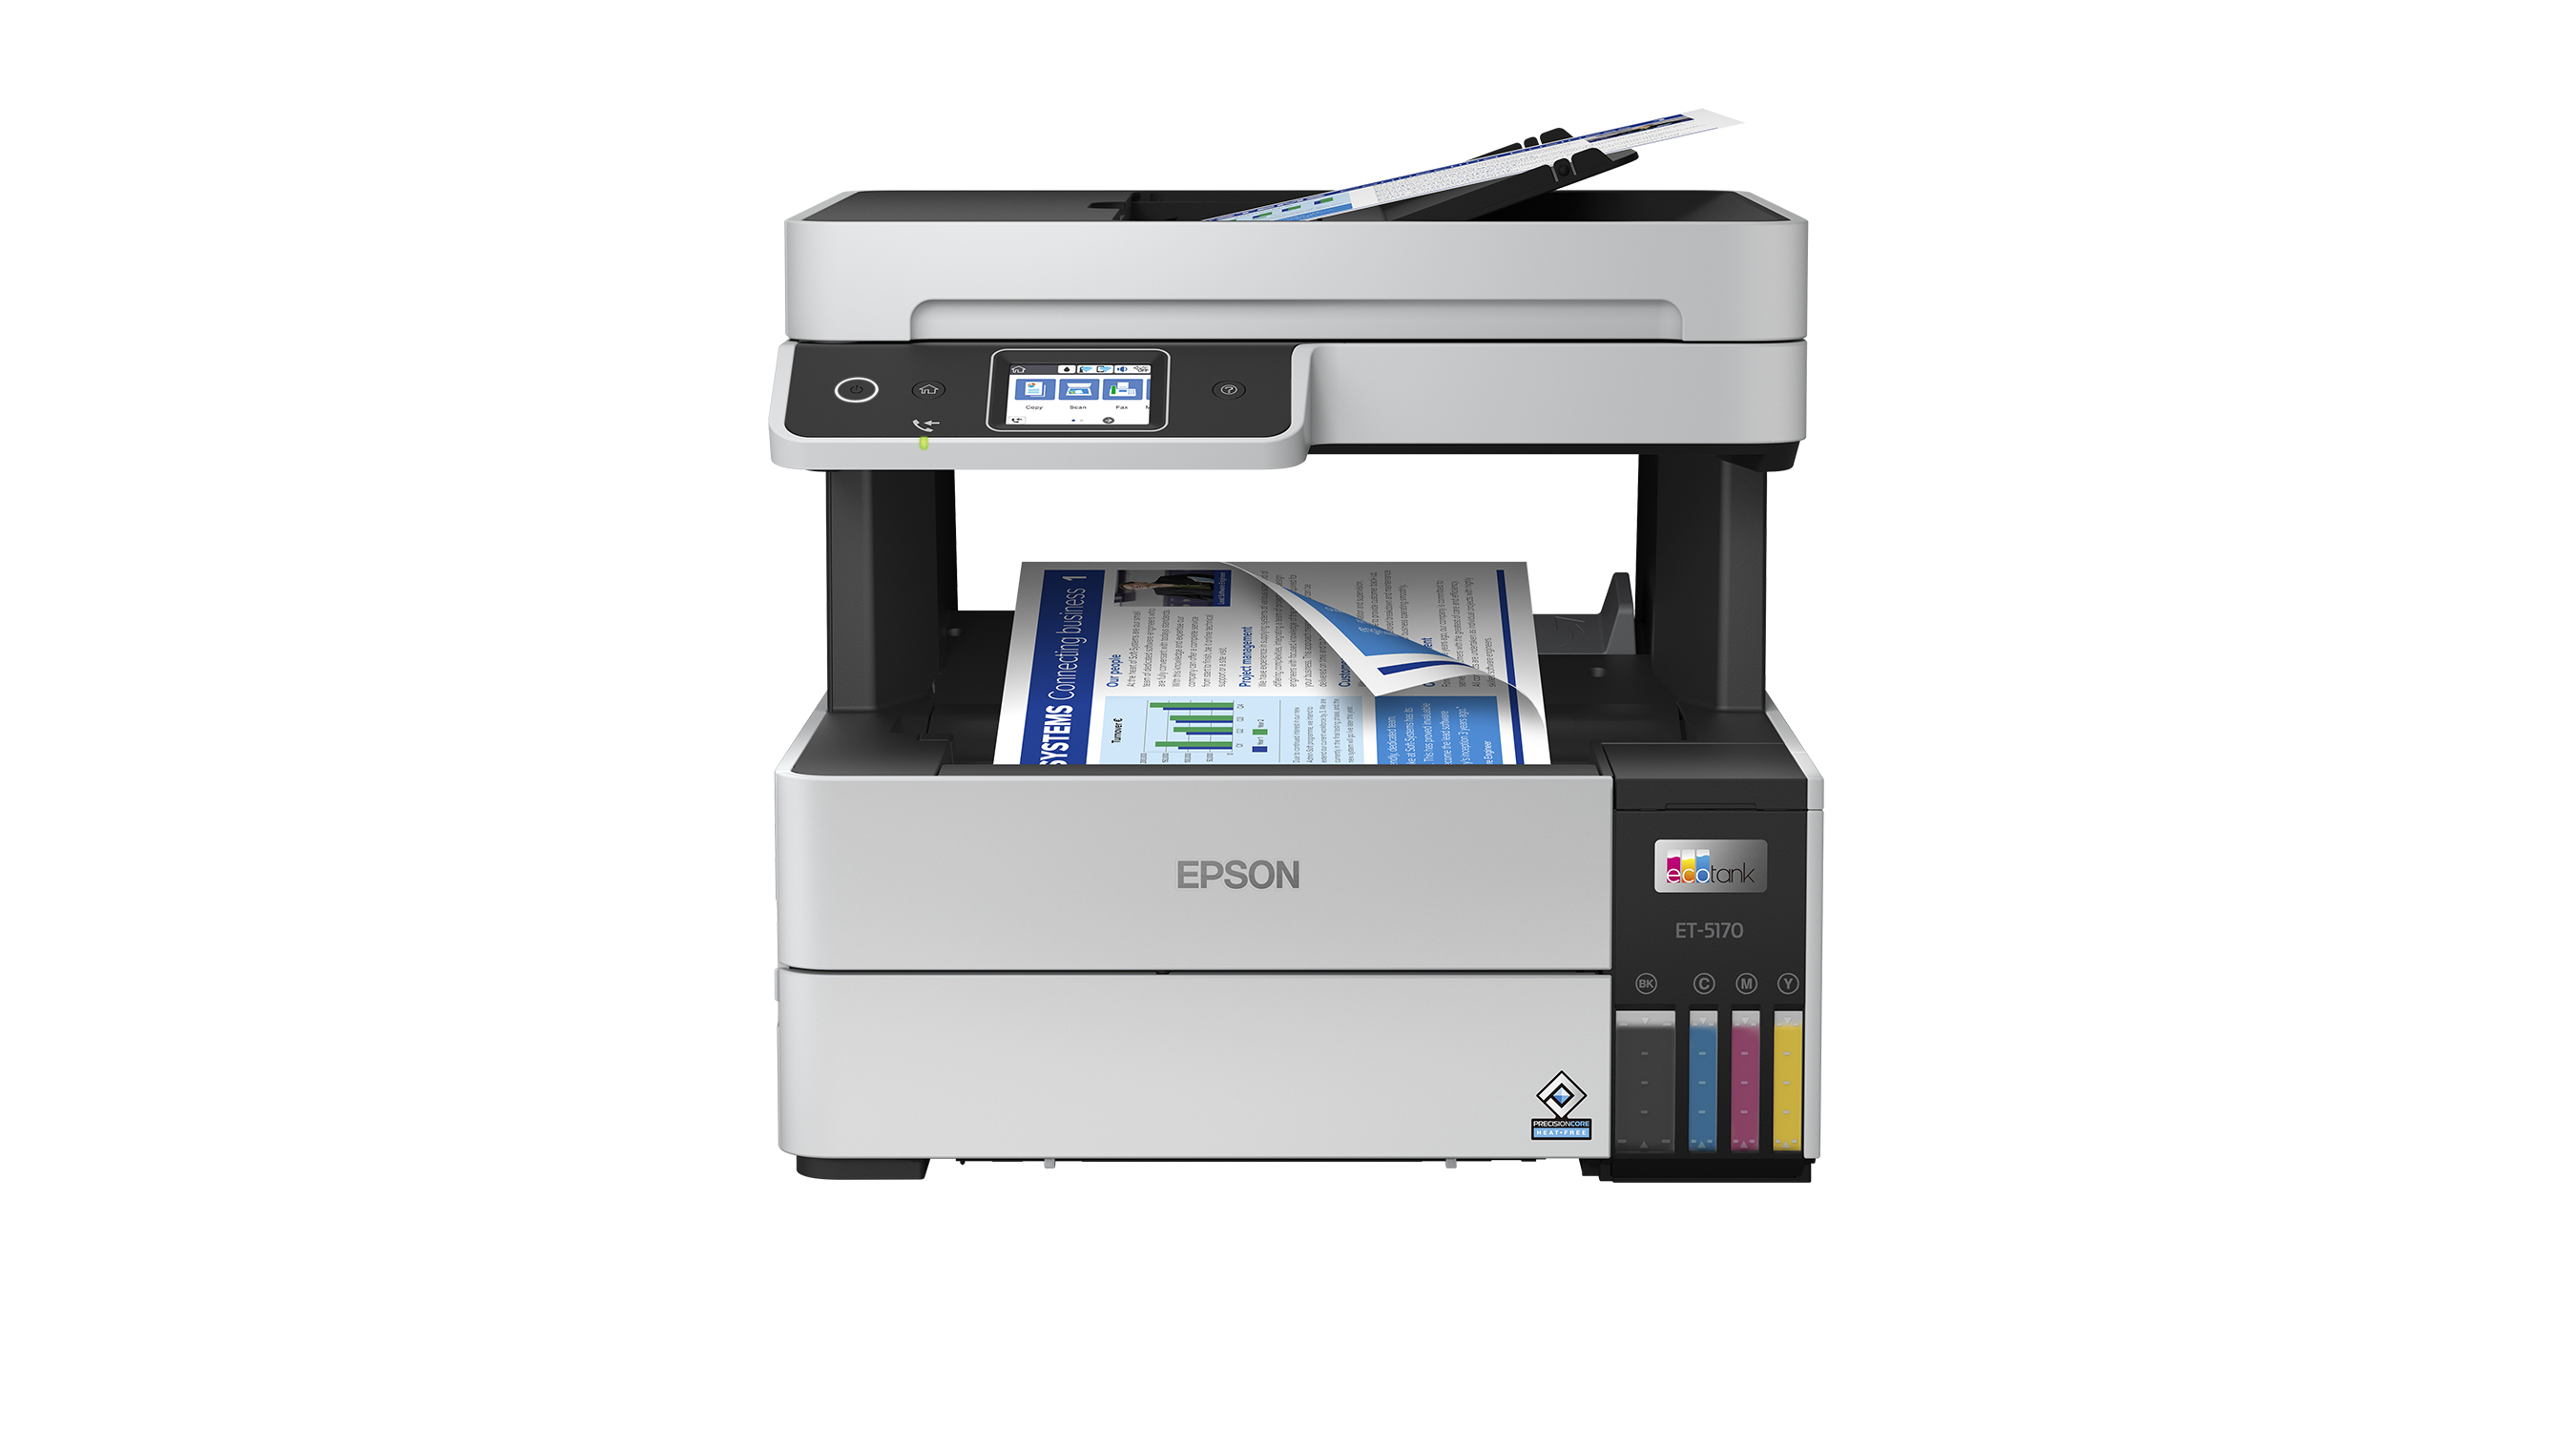 The EcoTank Pro ET-5170 delivers professional-quality prints and allows users to save up to 80 percent on ink, with low cost replacement ink bottles, ideal for high-volume business printing.